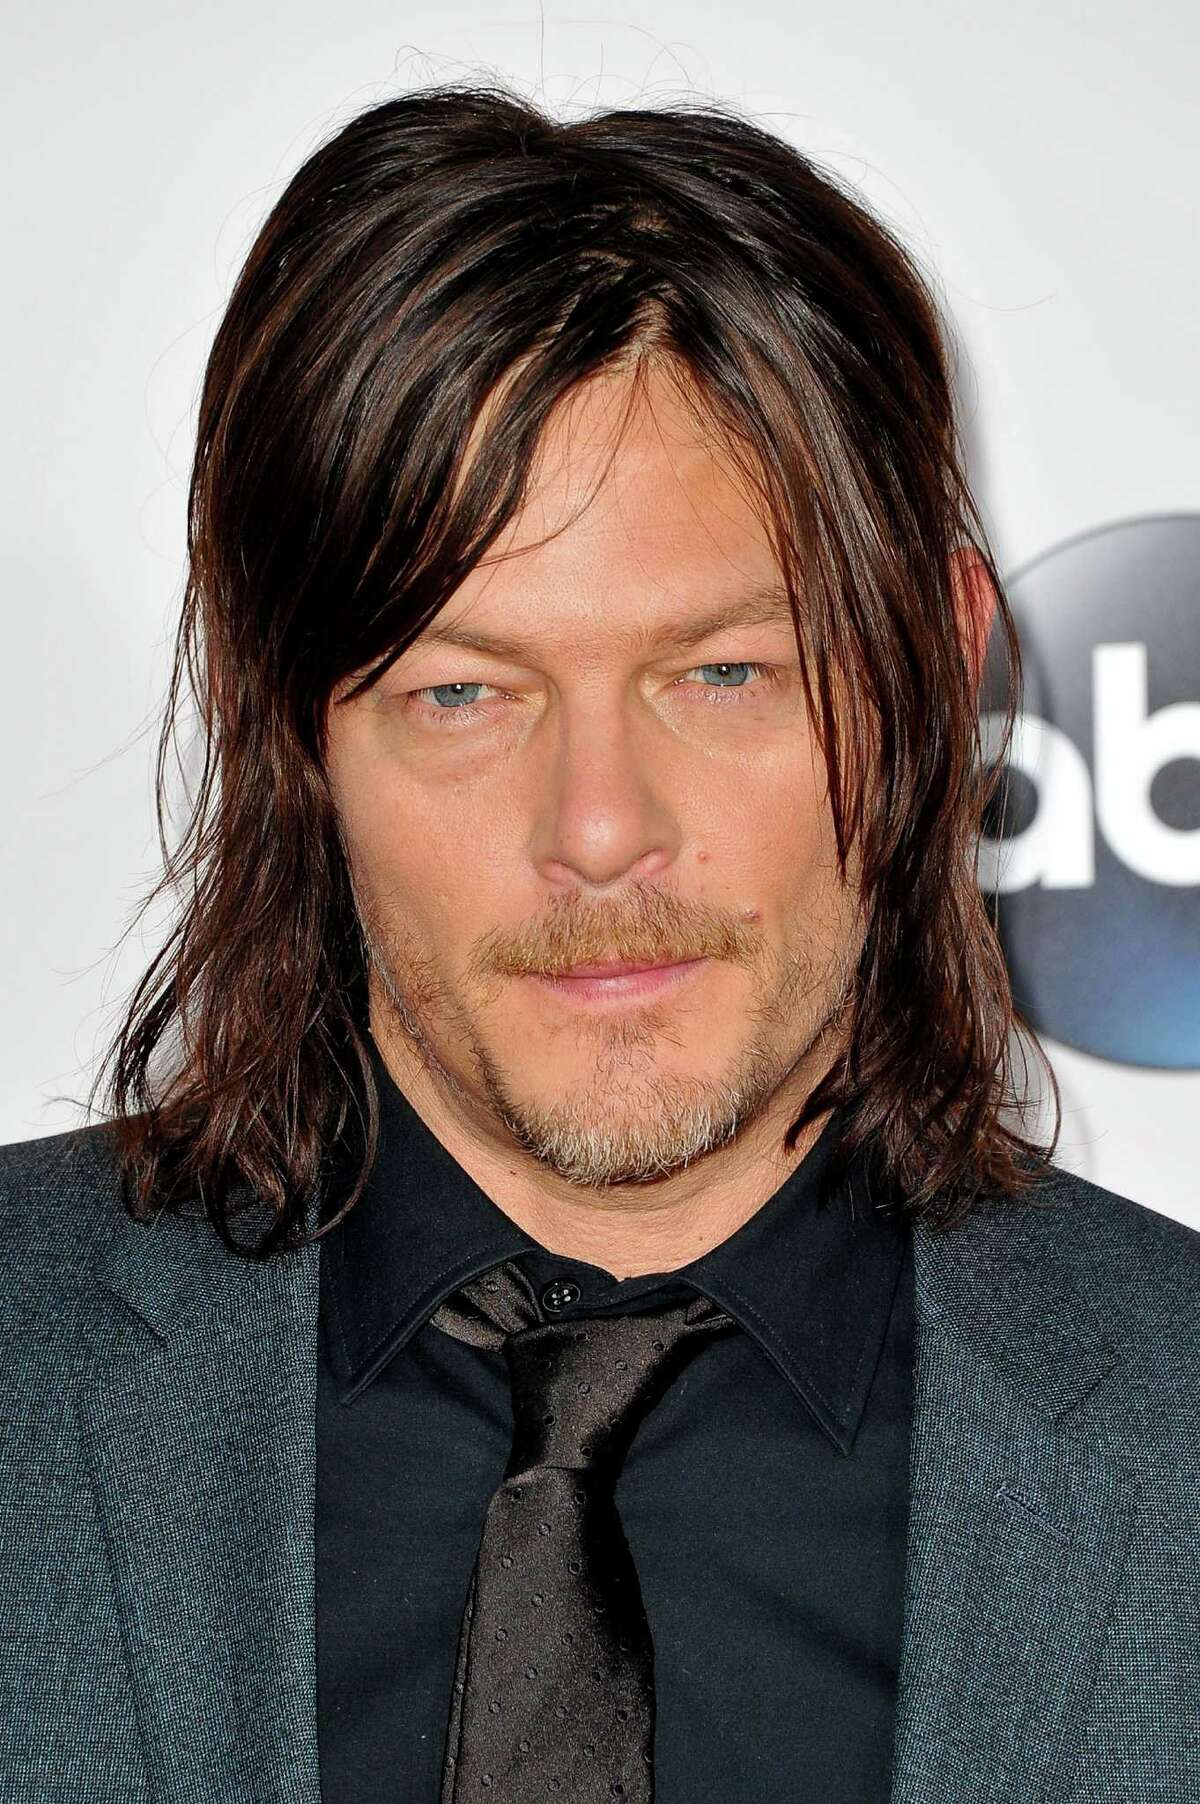 Actor Norman Reedus arrives at the 2015 American Music Awards at Microsoft Theater on November 22, 2015 in Los Angeles, California.